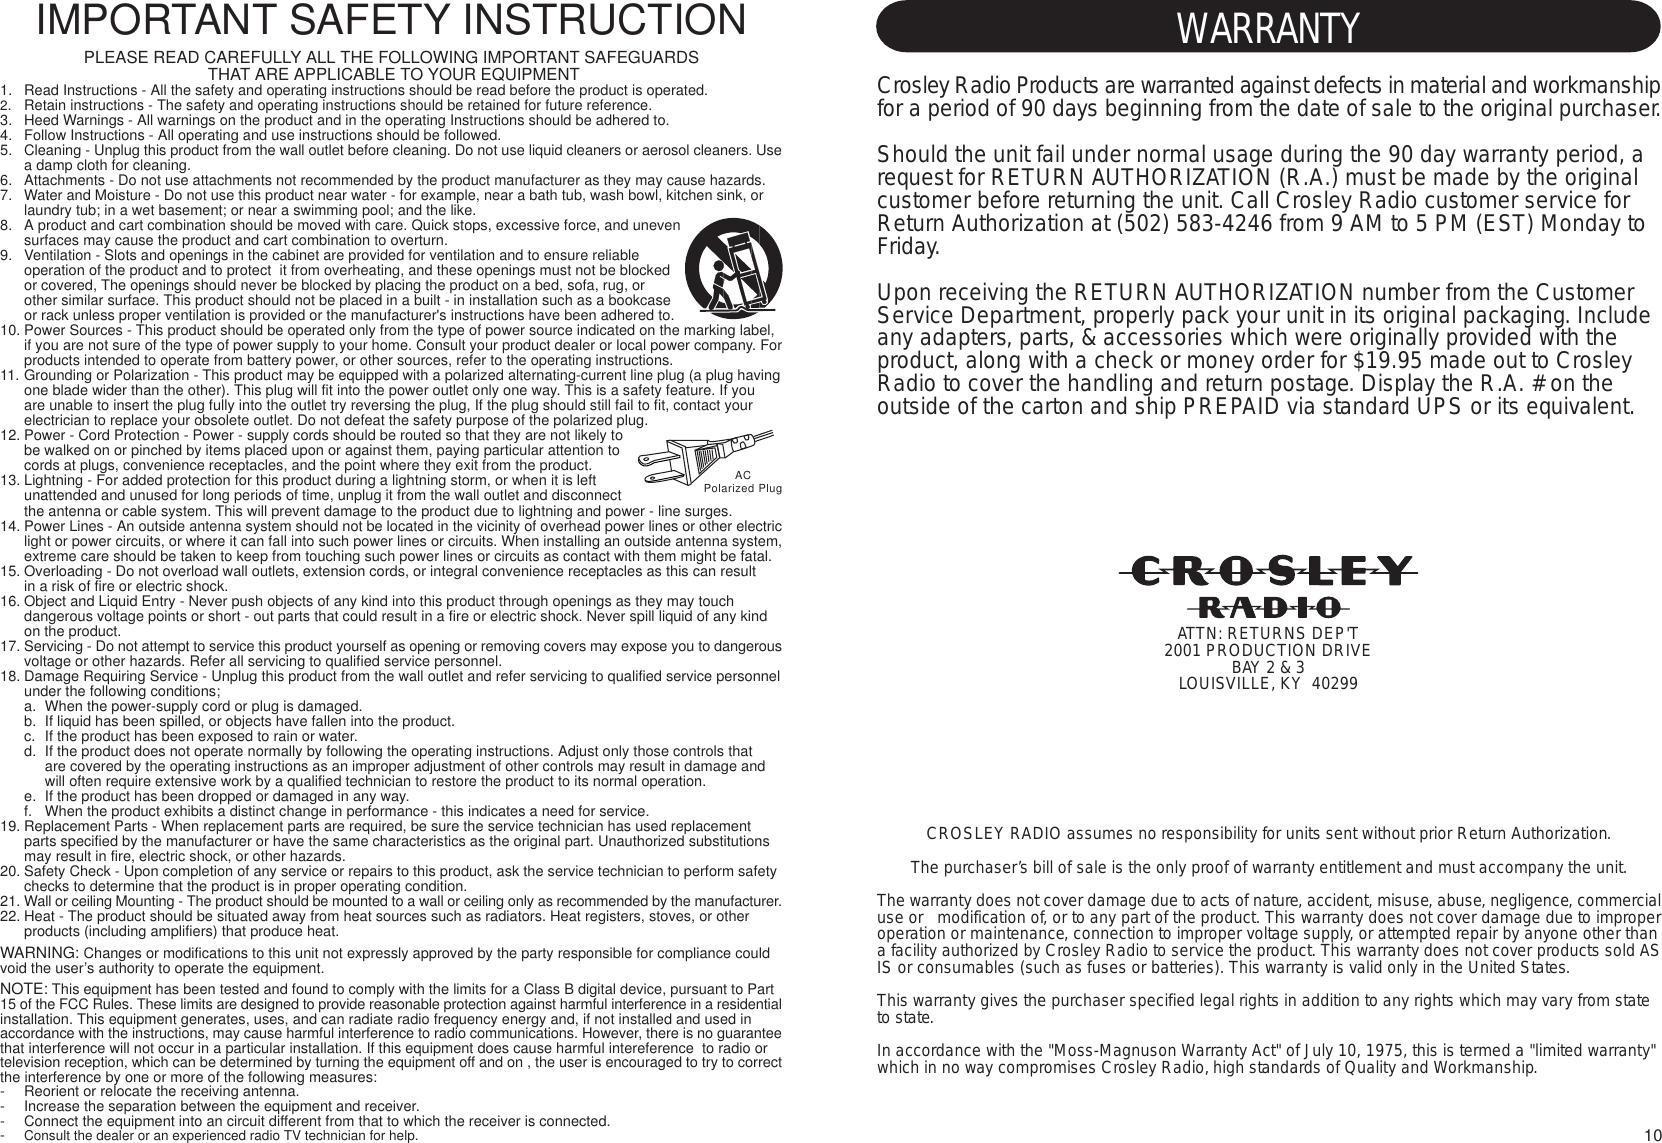 Crosley Parts Diagrams Together With Crosley Washer And Dryer Parts